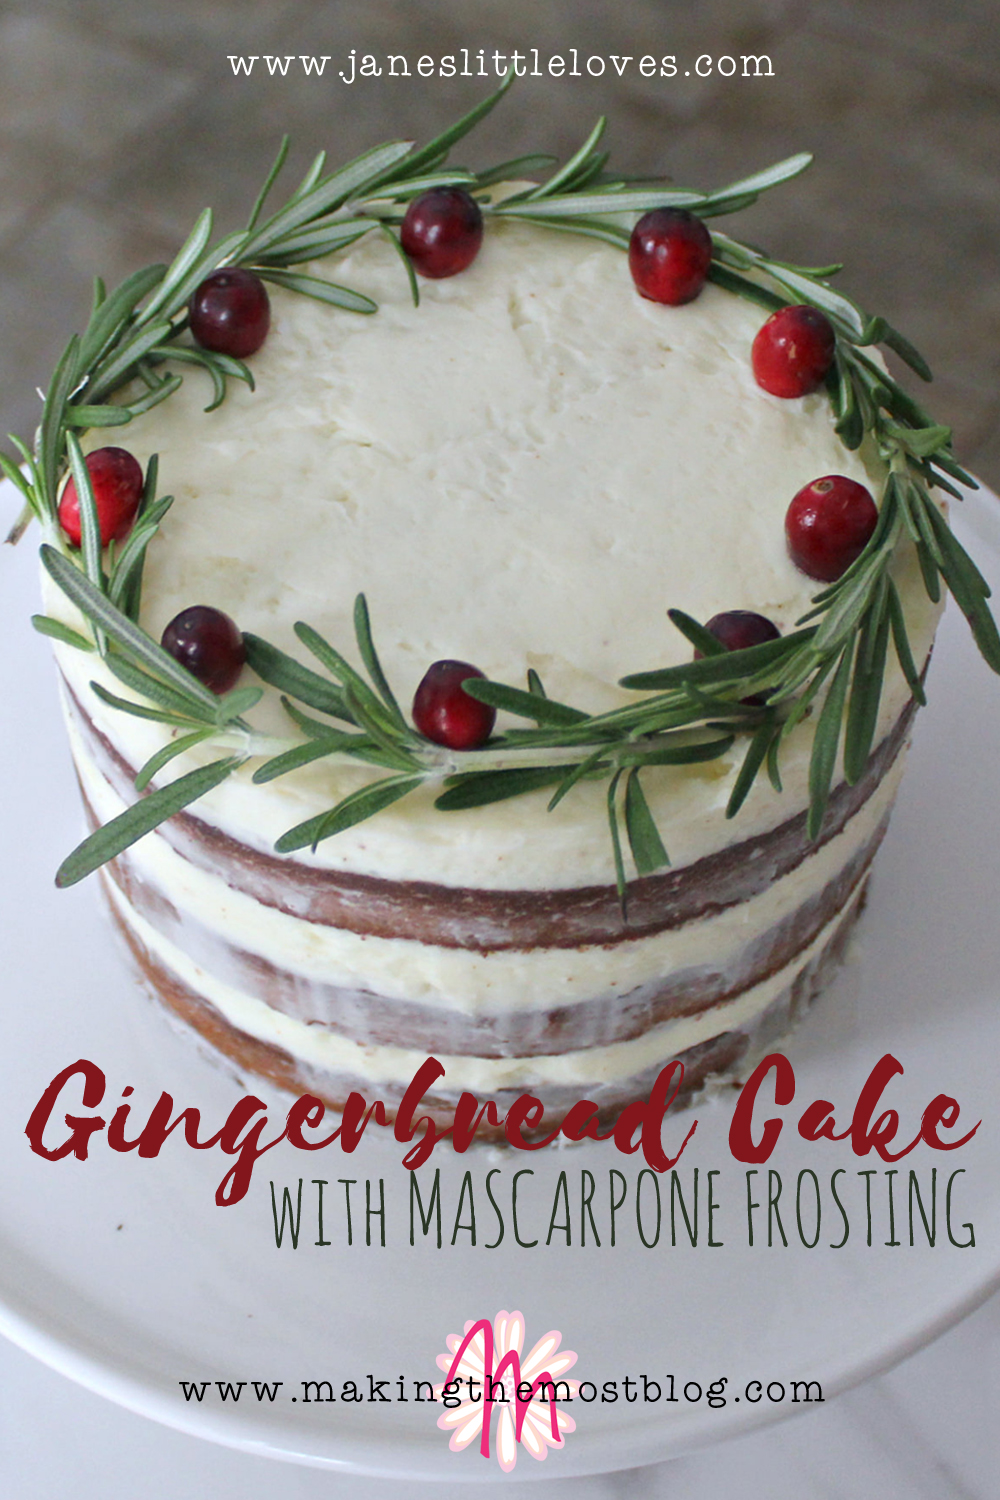 Gingerbread Cake With Mascarpone Frosting Recipe